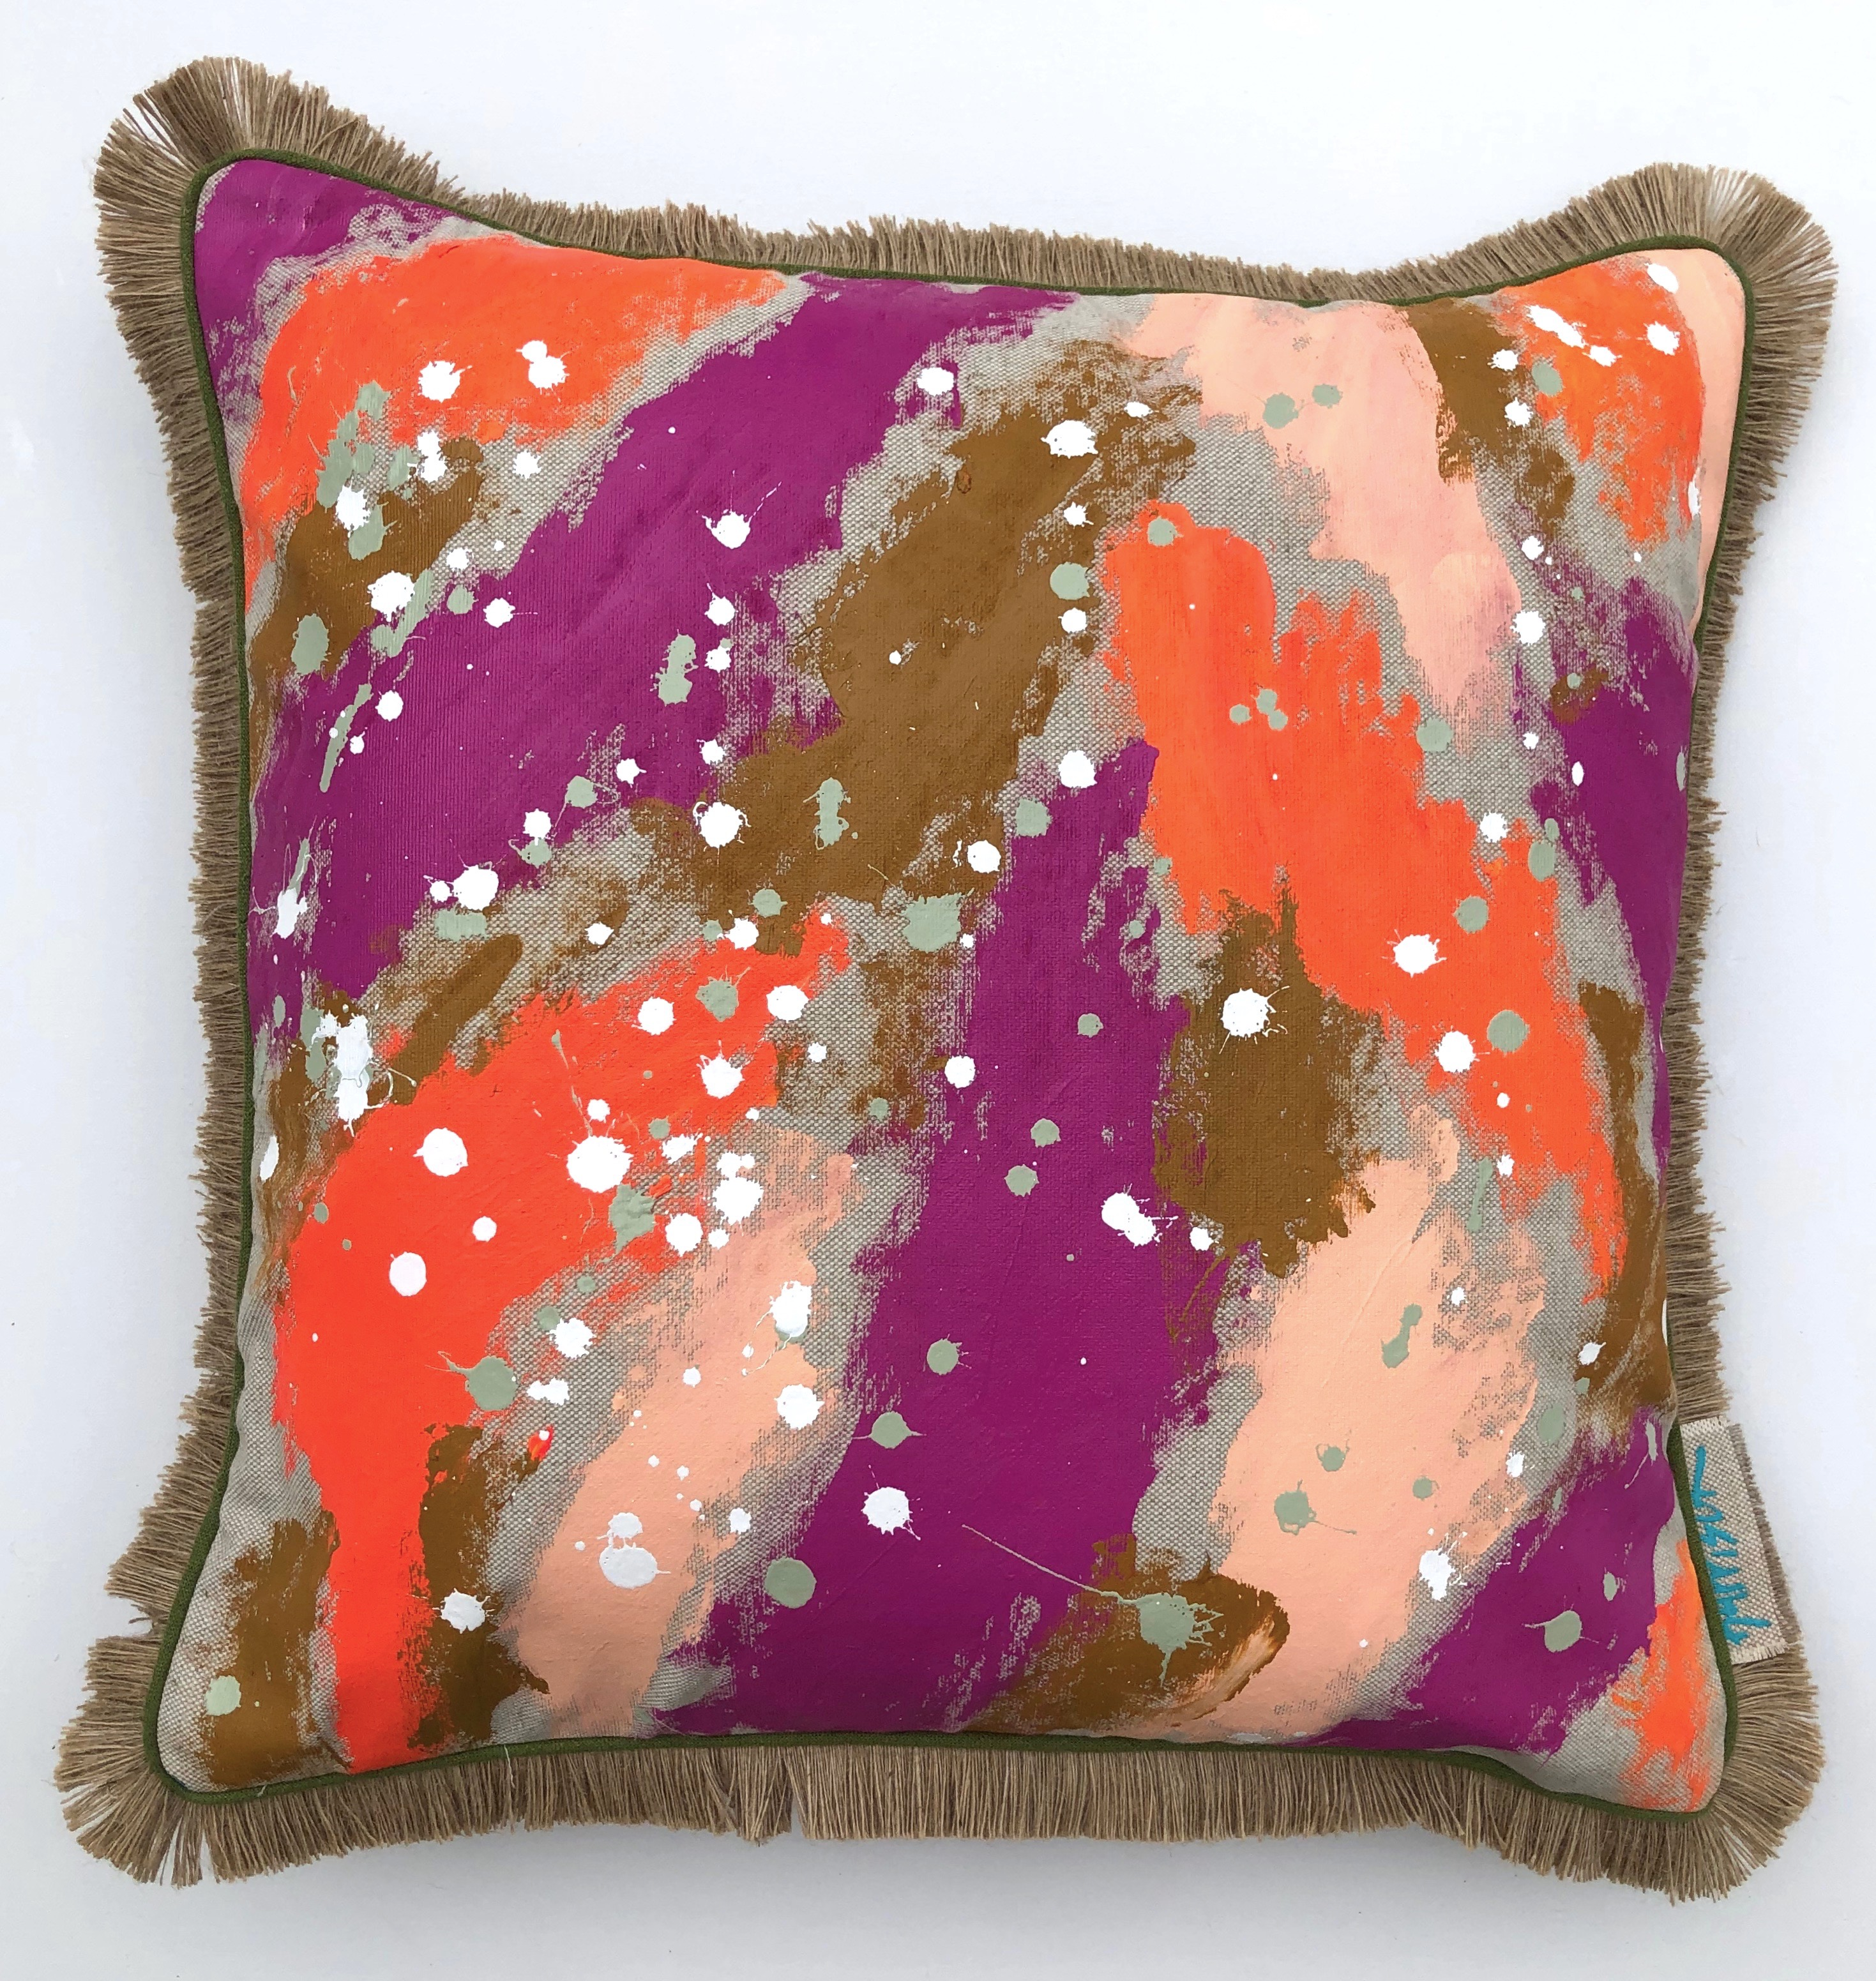 HUSTLE AND BUSTLE PILLOW I